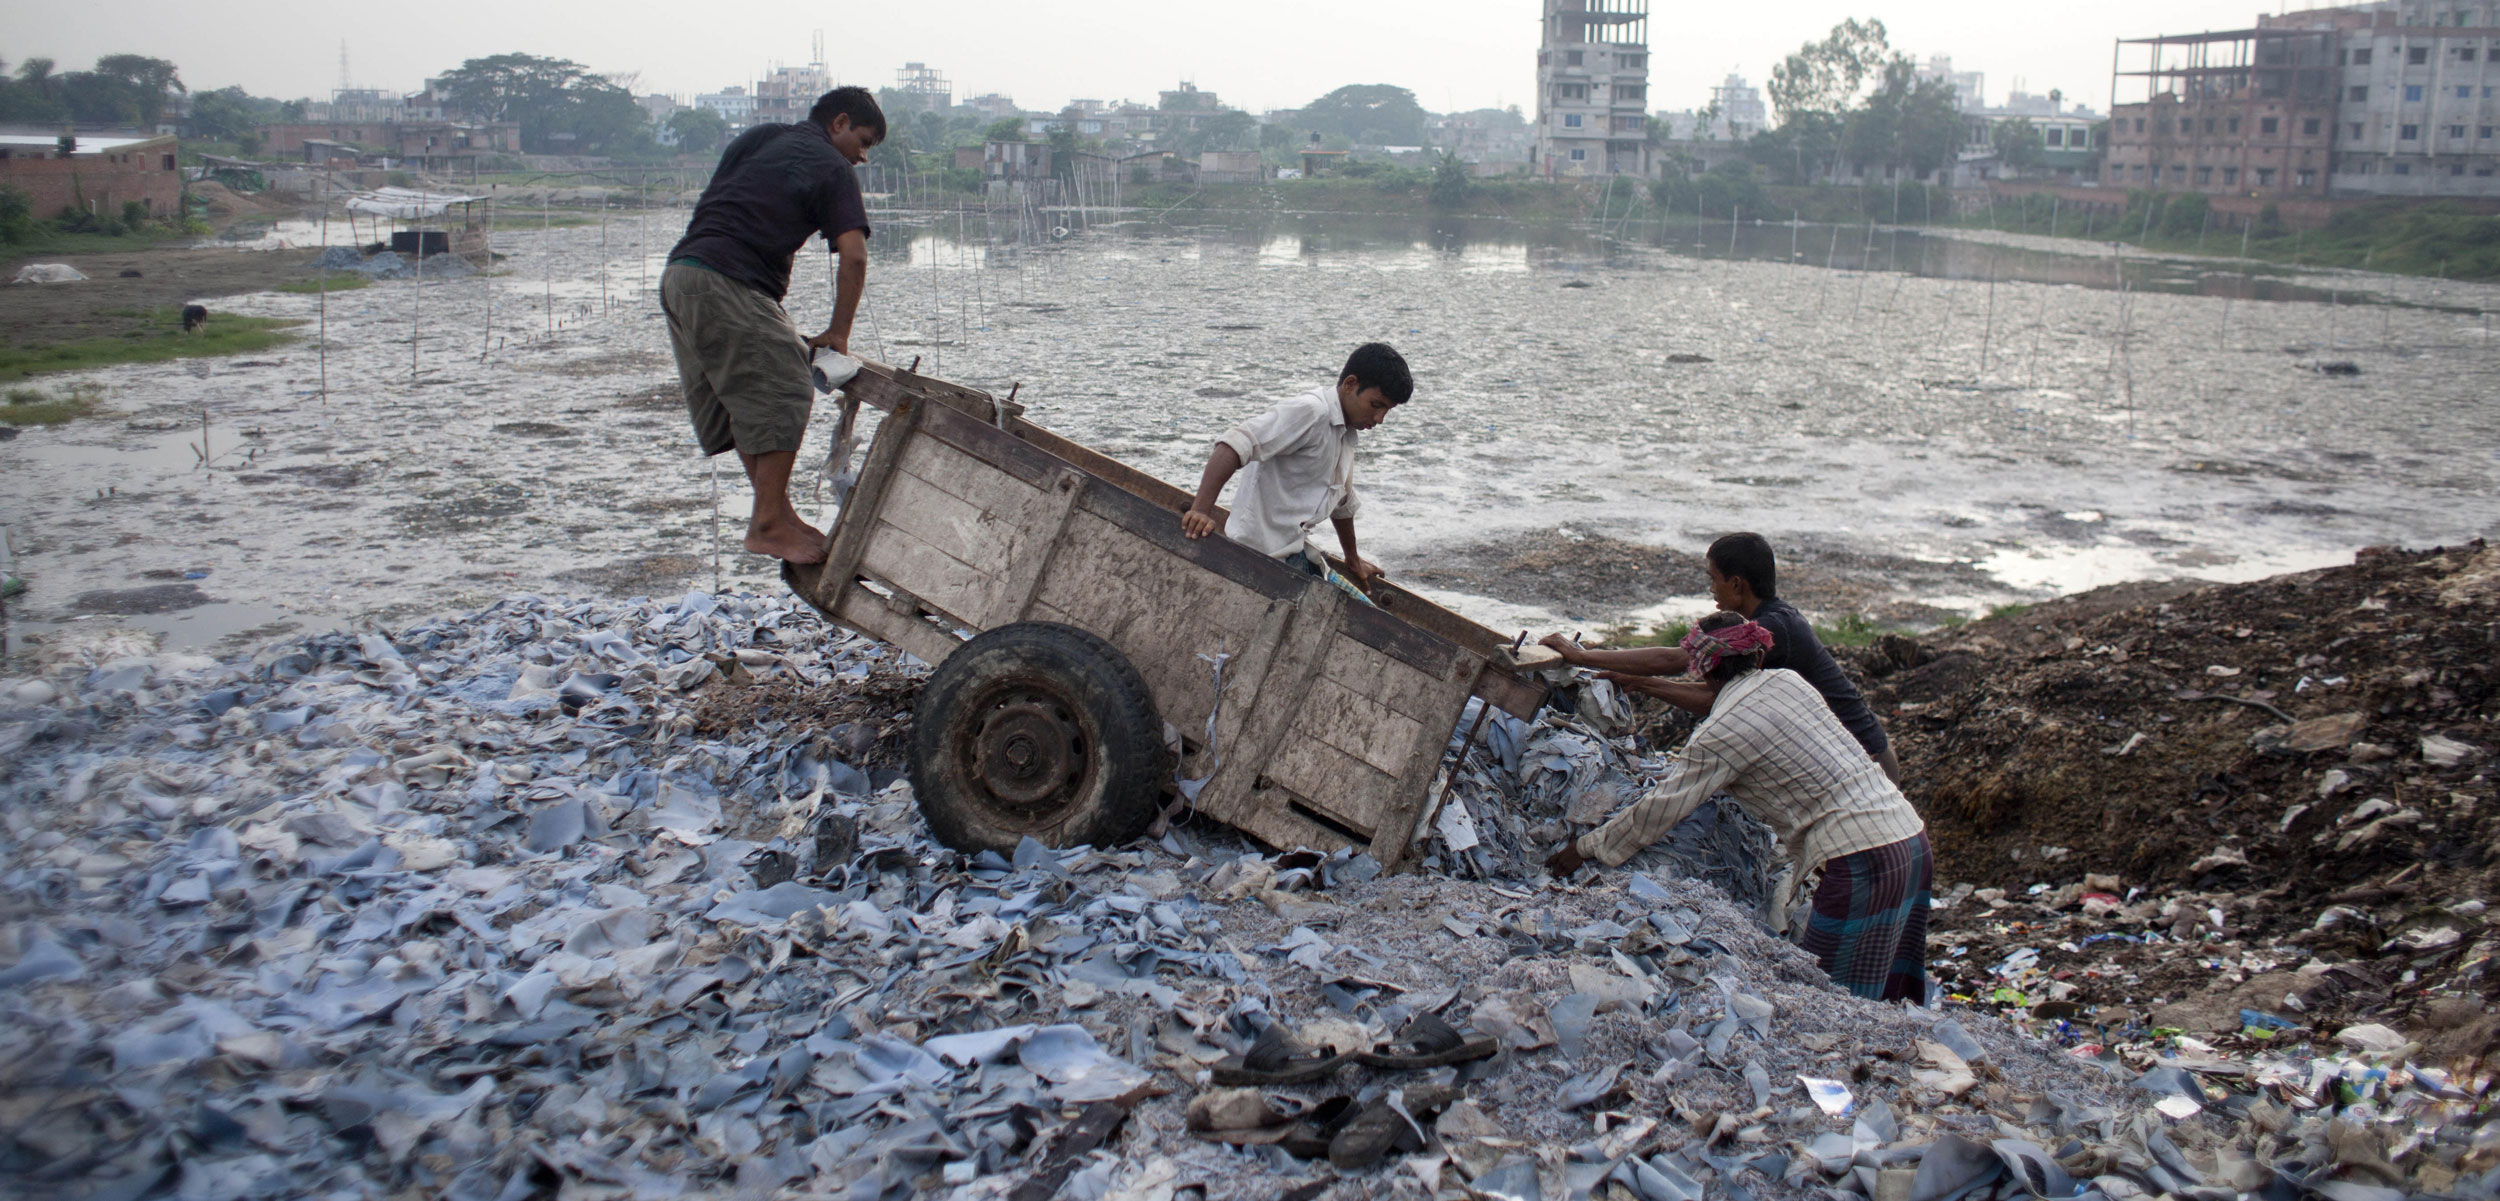 In Bangladesh, leather factories long dumped their toxic wastewater into the Buriganga River and discarded their leather scraps along its banks. Today, parts of the river are almost dead. Photo by Zuma Press, Inc./Alamy Stock Photo